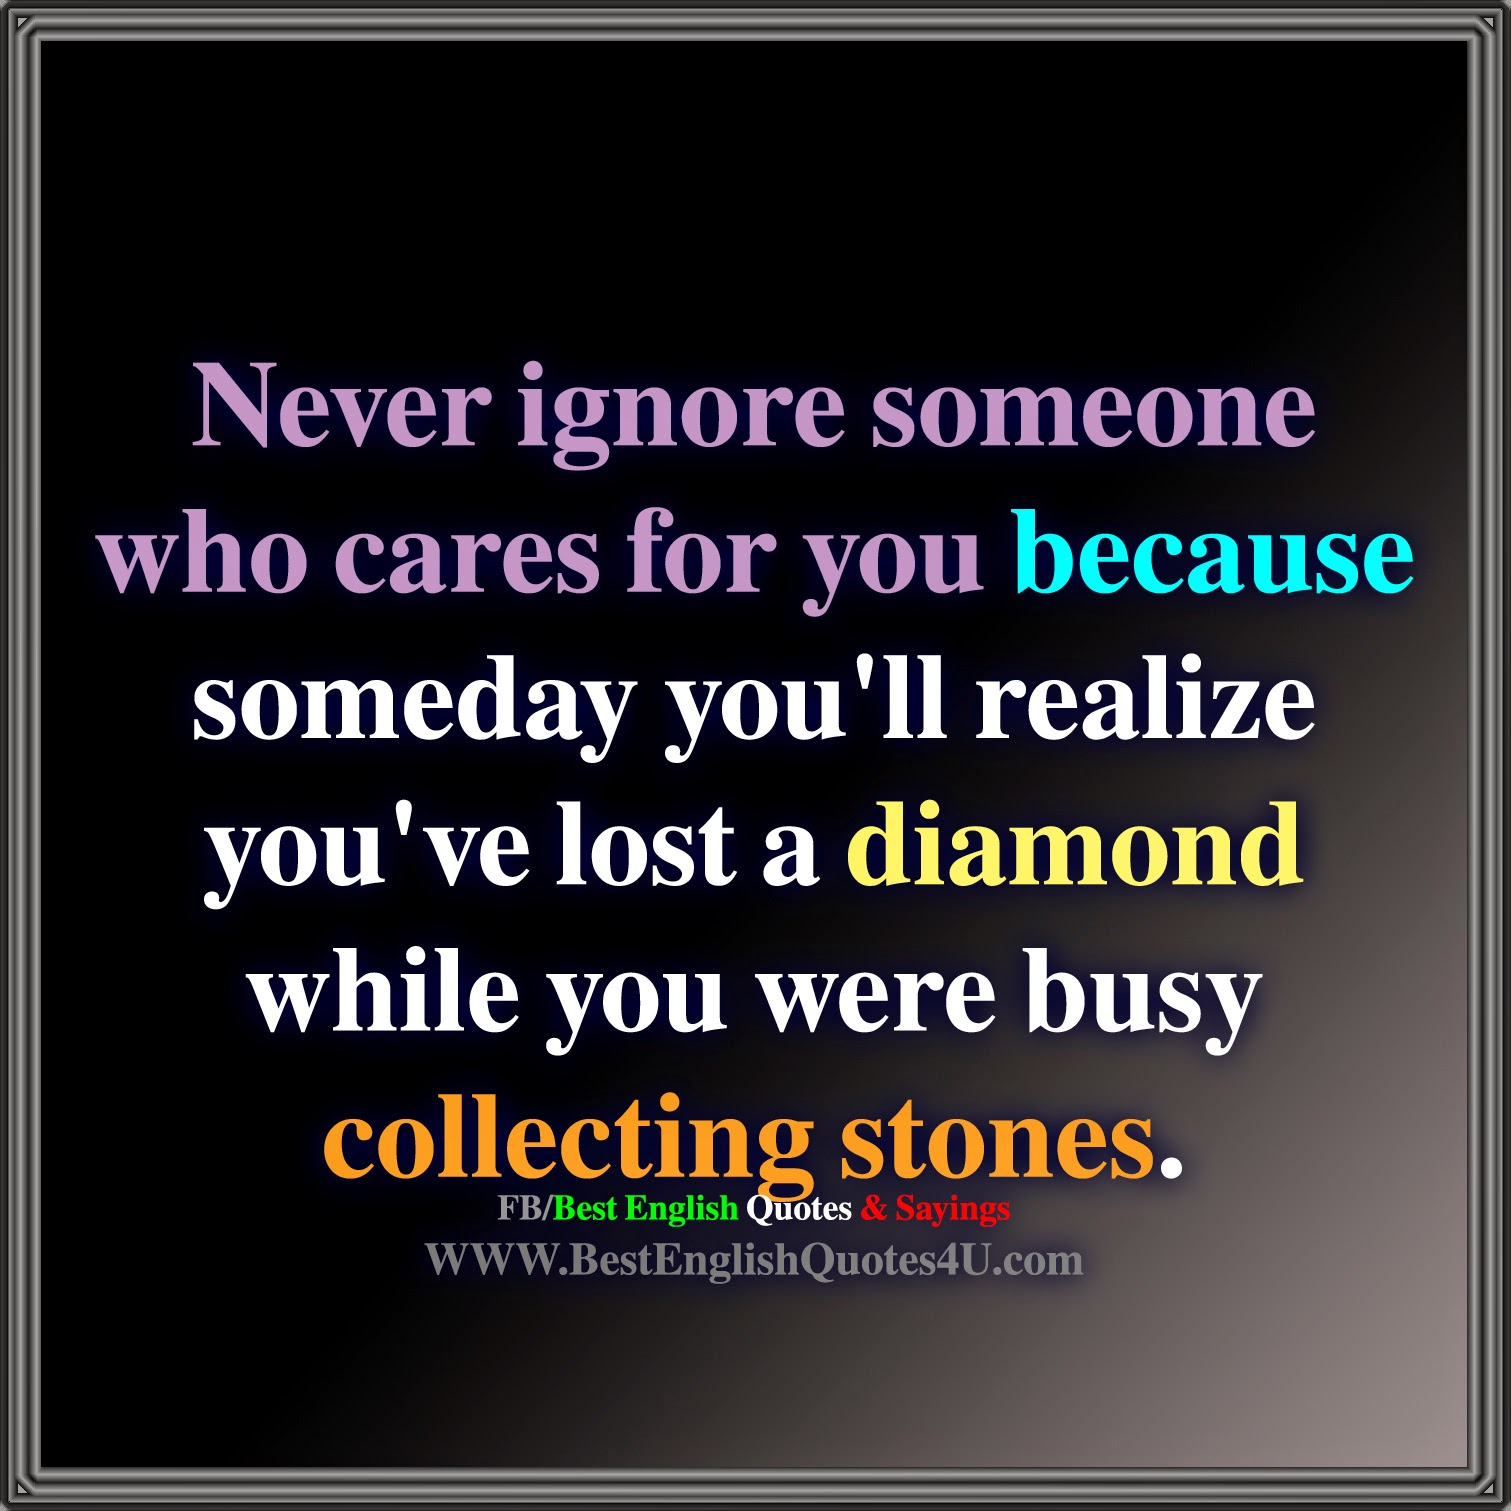 Never ignore someone who cares for you | Best English